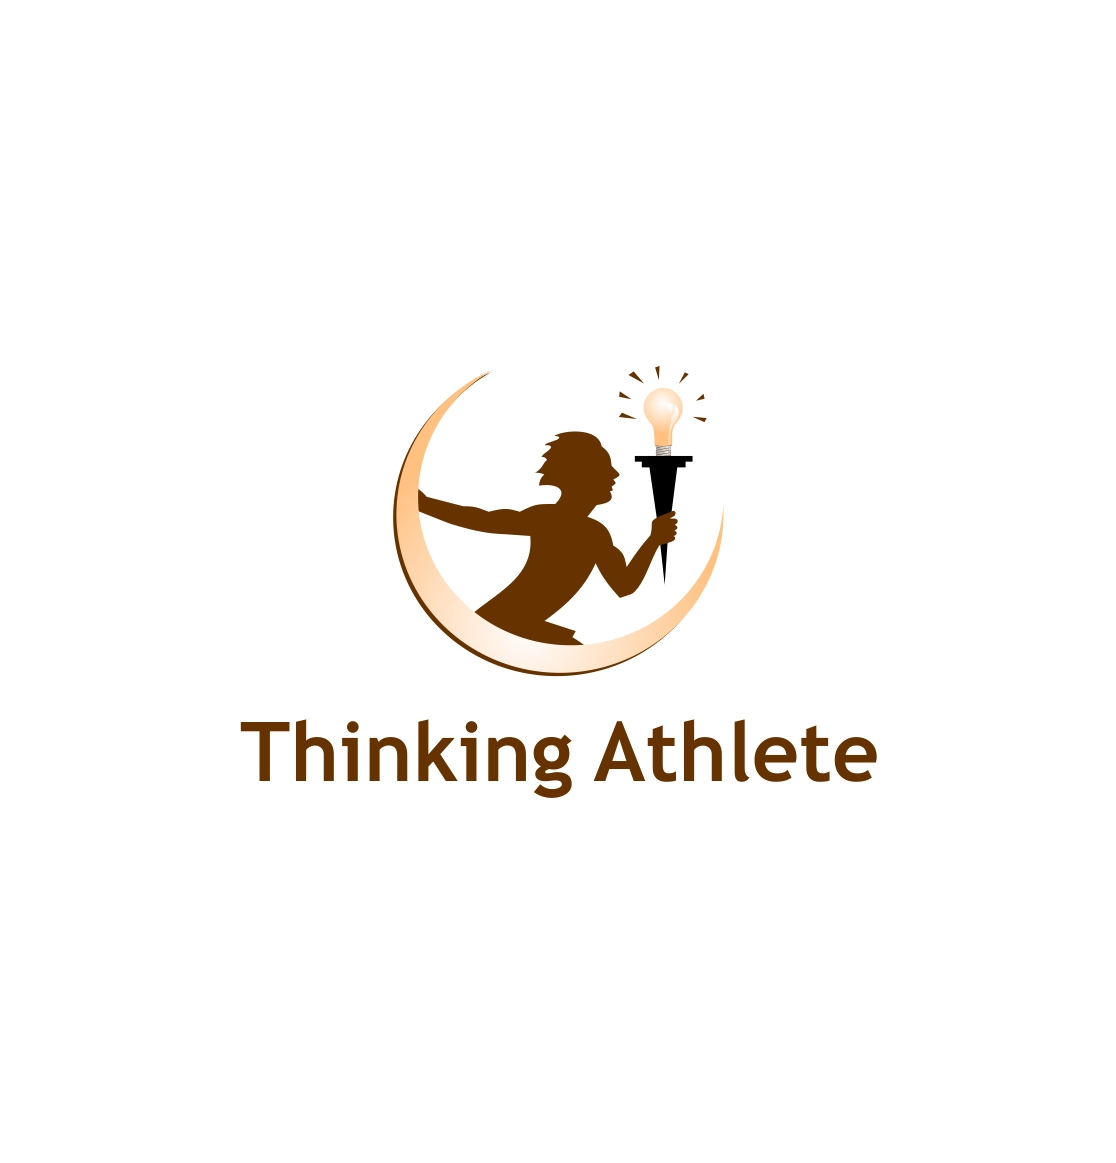 Logo Design by haidu - Entry No. 8 in the Logo Design Contest Thinking Athlete Logo Design.